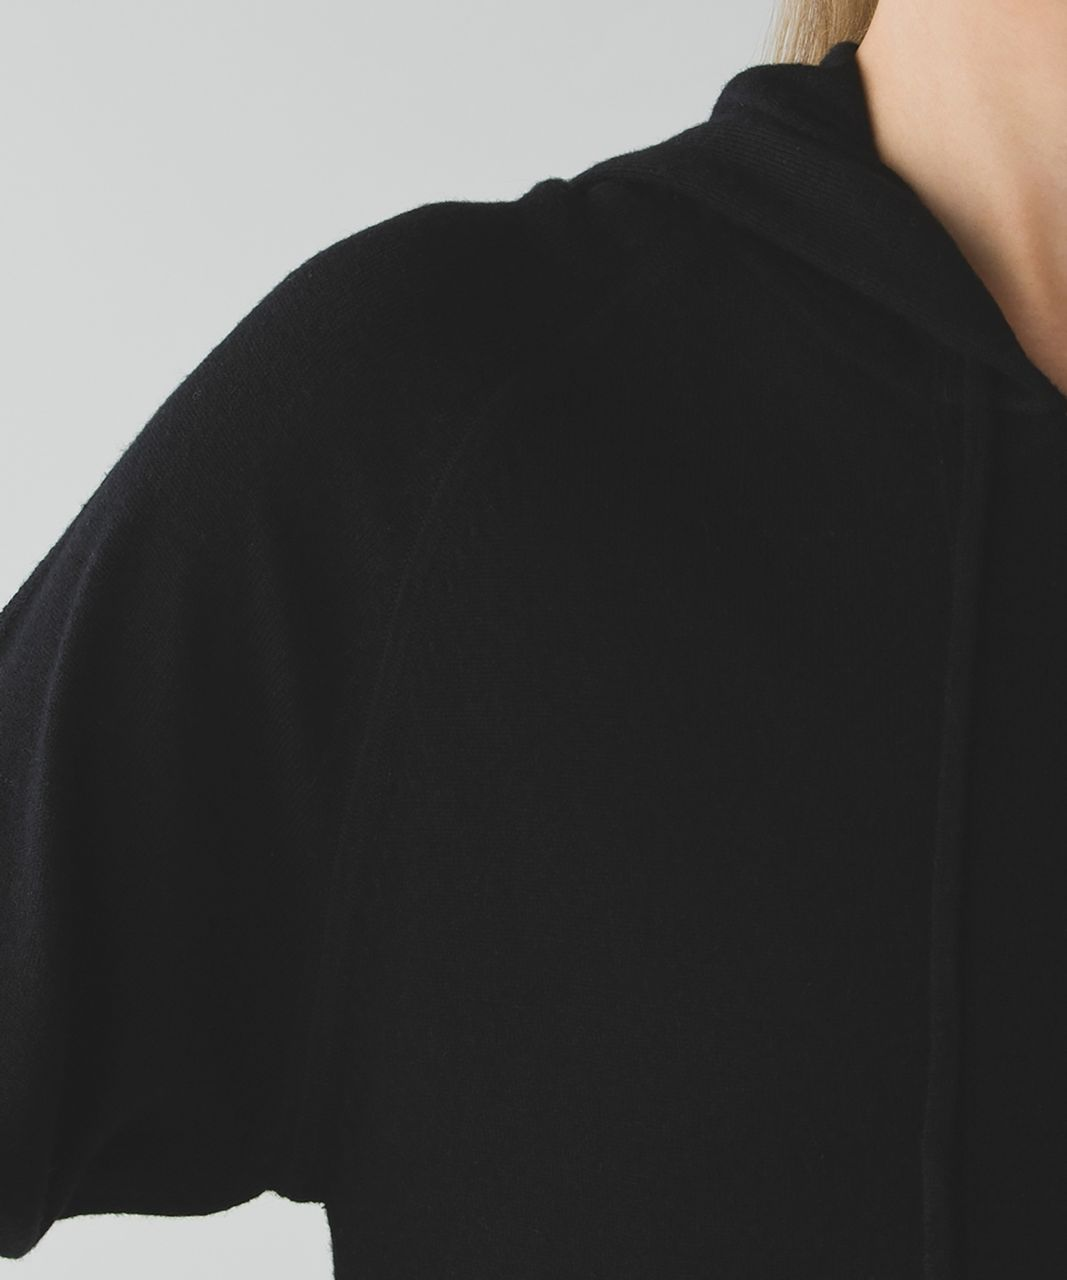 Lululemon Om On Hoodie - Black